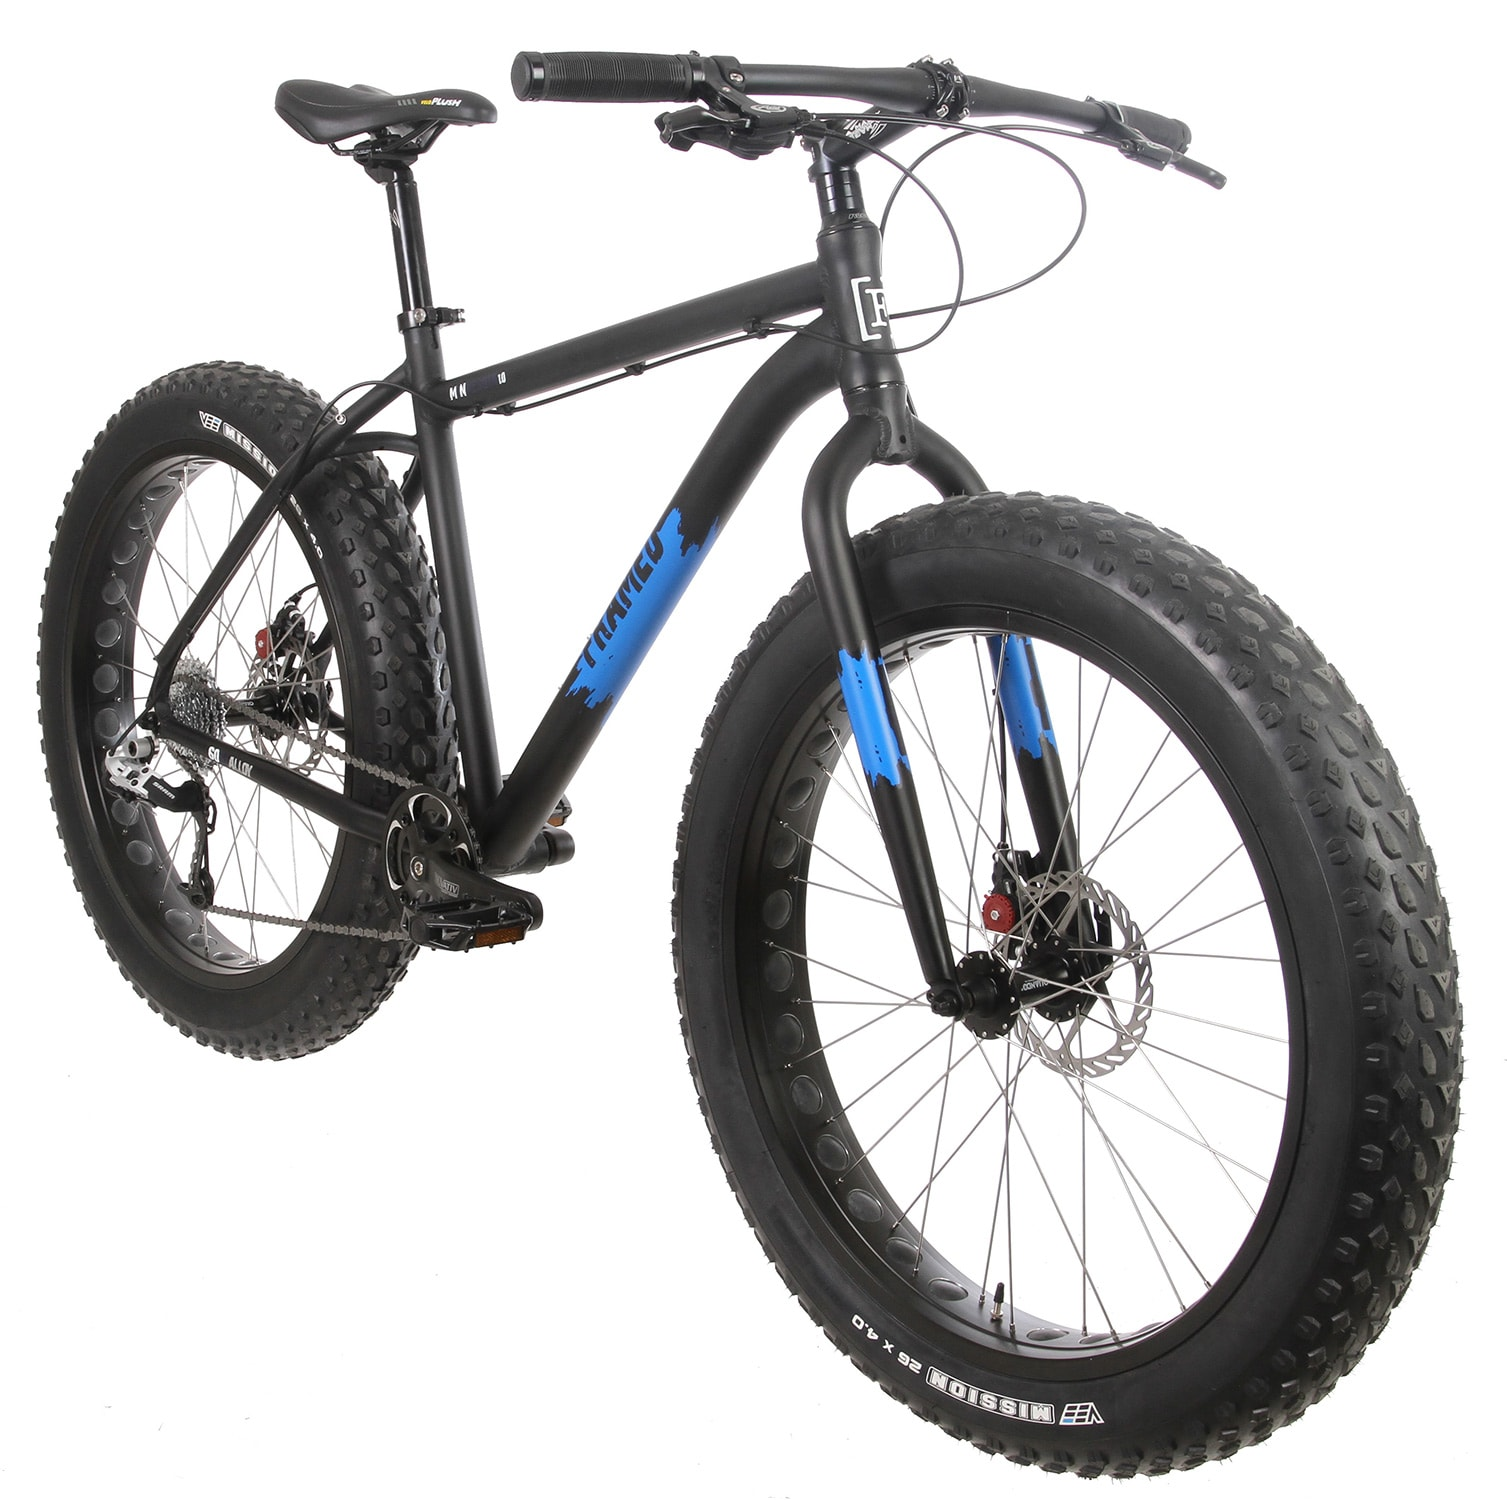 On Sale Framed Minnesota 1.0 Fat Bike up to 55% off